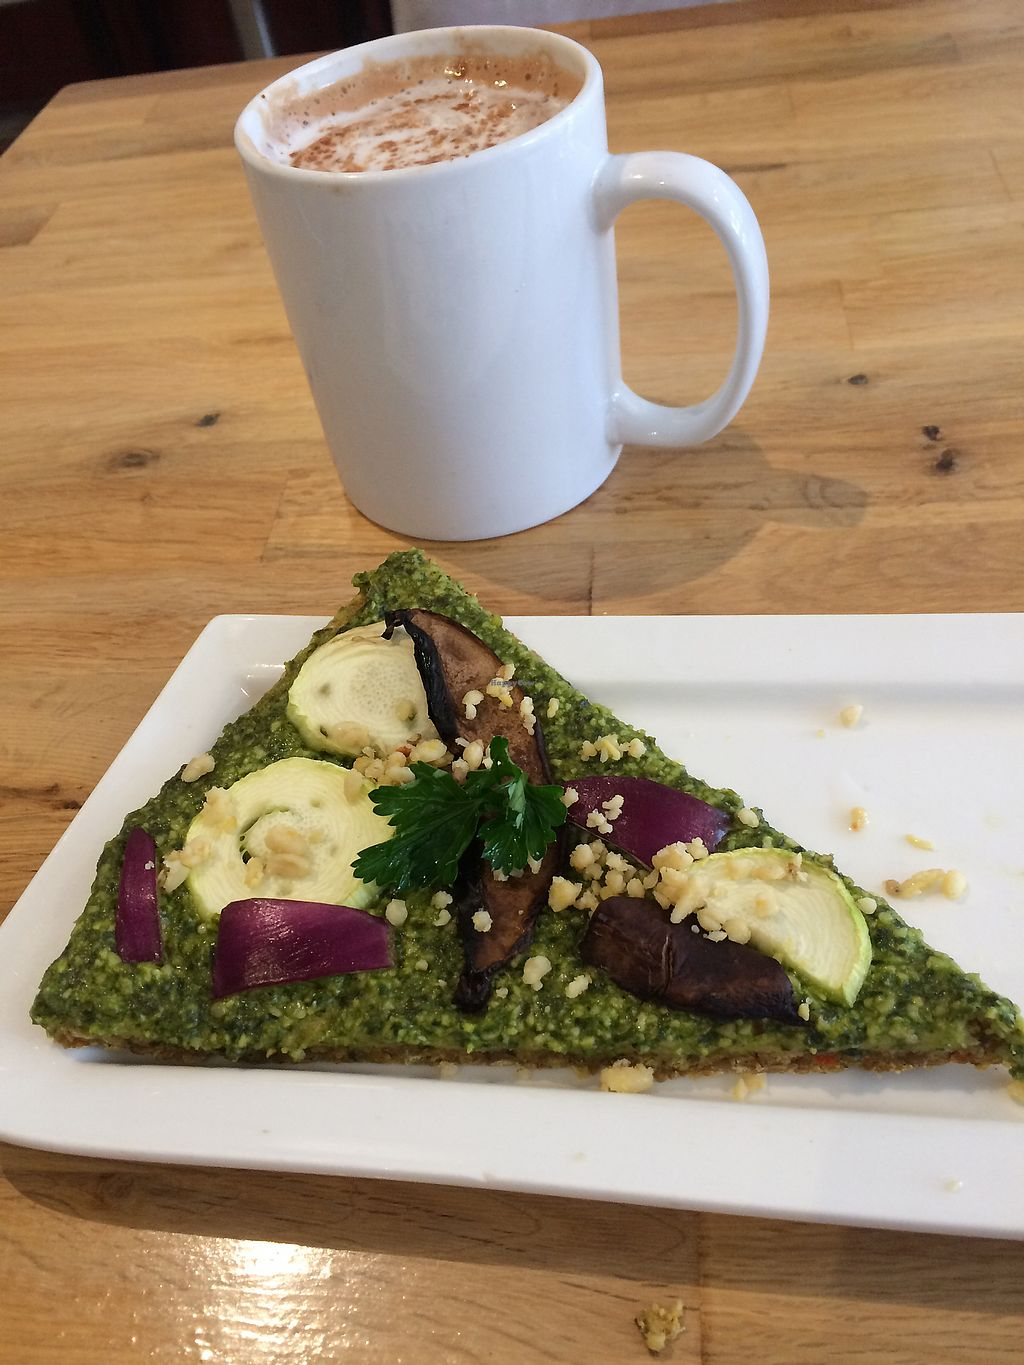 """Photo of Rawlicious  by <a href=""""/members/profile/MamaSinkins"""">MamaSinkins</a> <br/>Pesto pizza of the day & hot chocolate  <br/> February 7, 2018  - <a href='/contact/abuse/image/32001/356121'>Report</a>"""